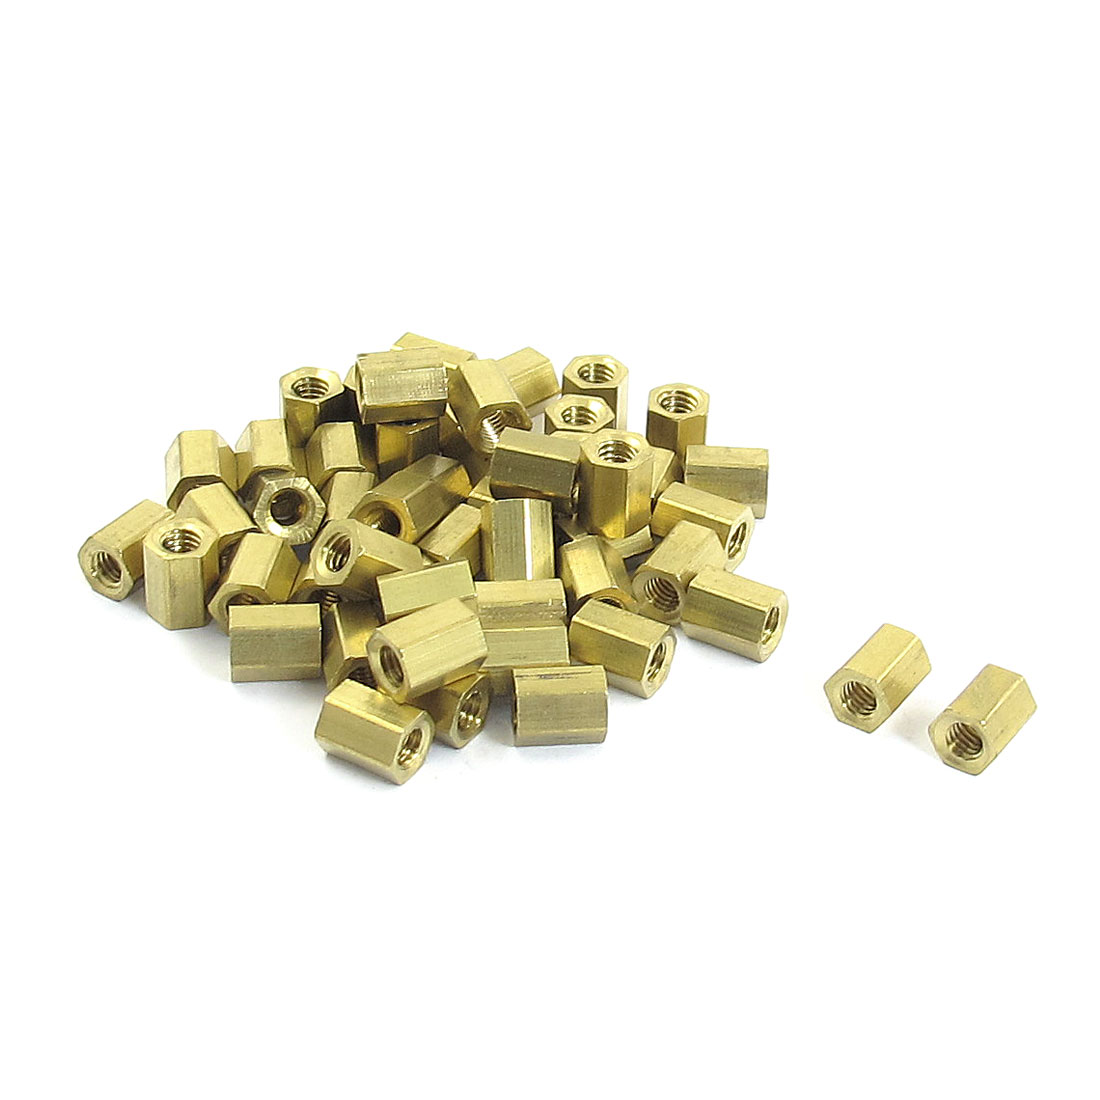 50 Pcs Female Threaded Hexagonal Brass Standoff Spacer Gold Tone M4x8mm